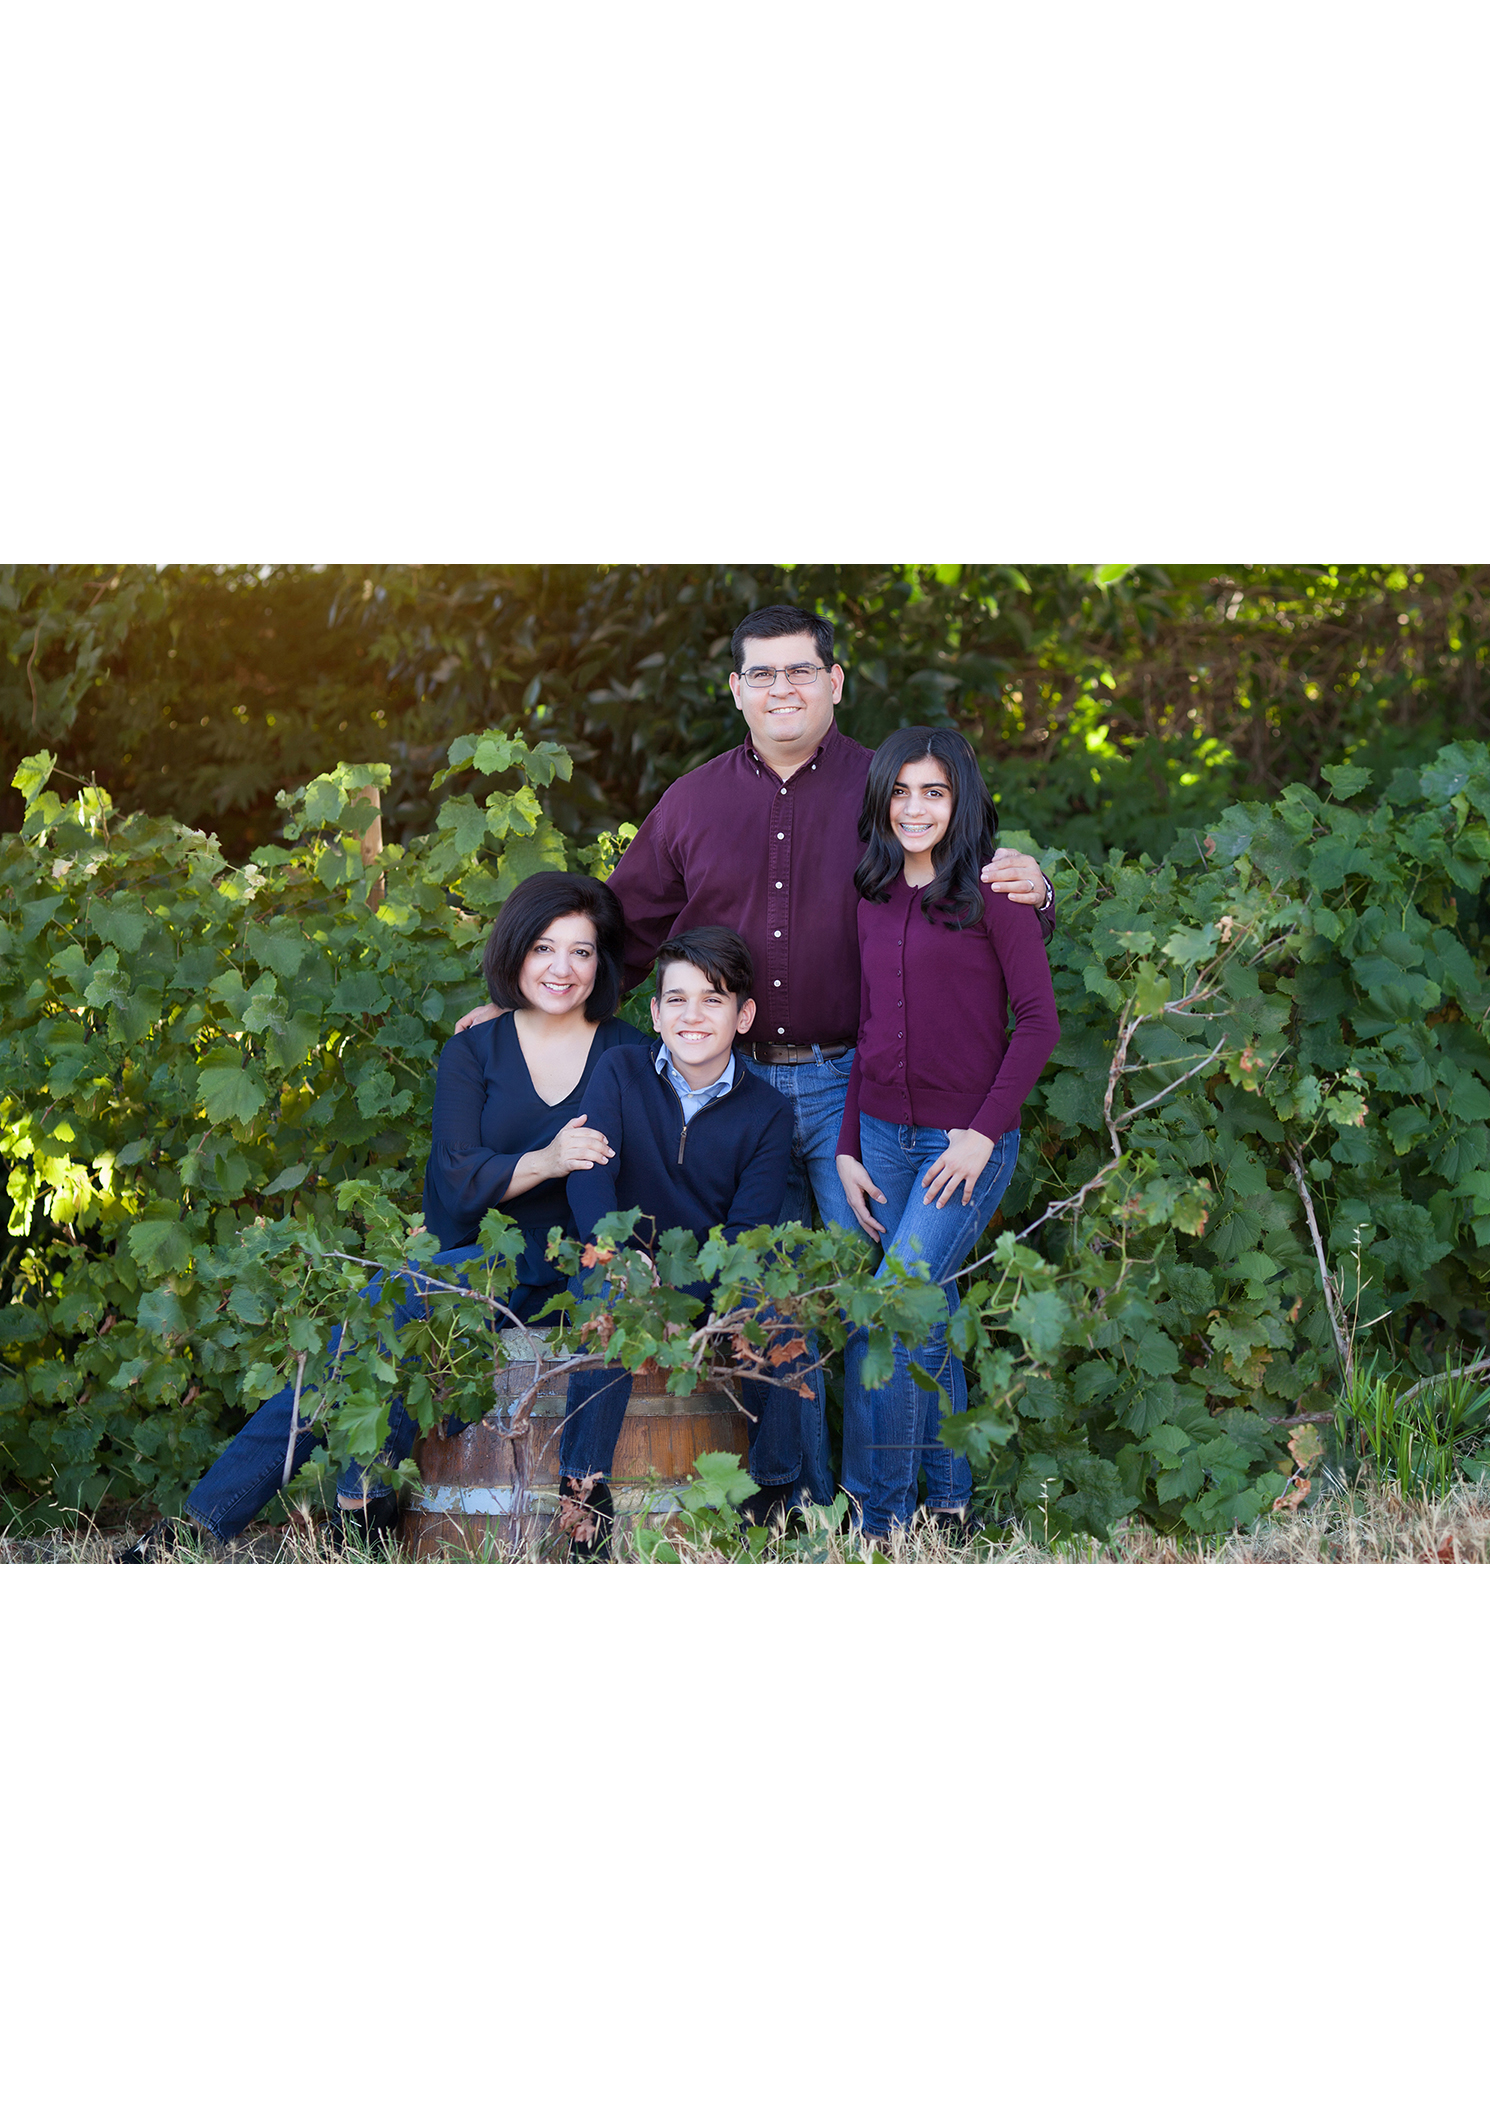 wine country family portraits outdoors